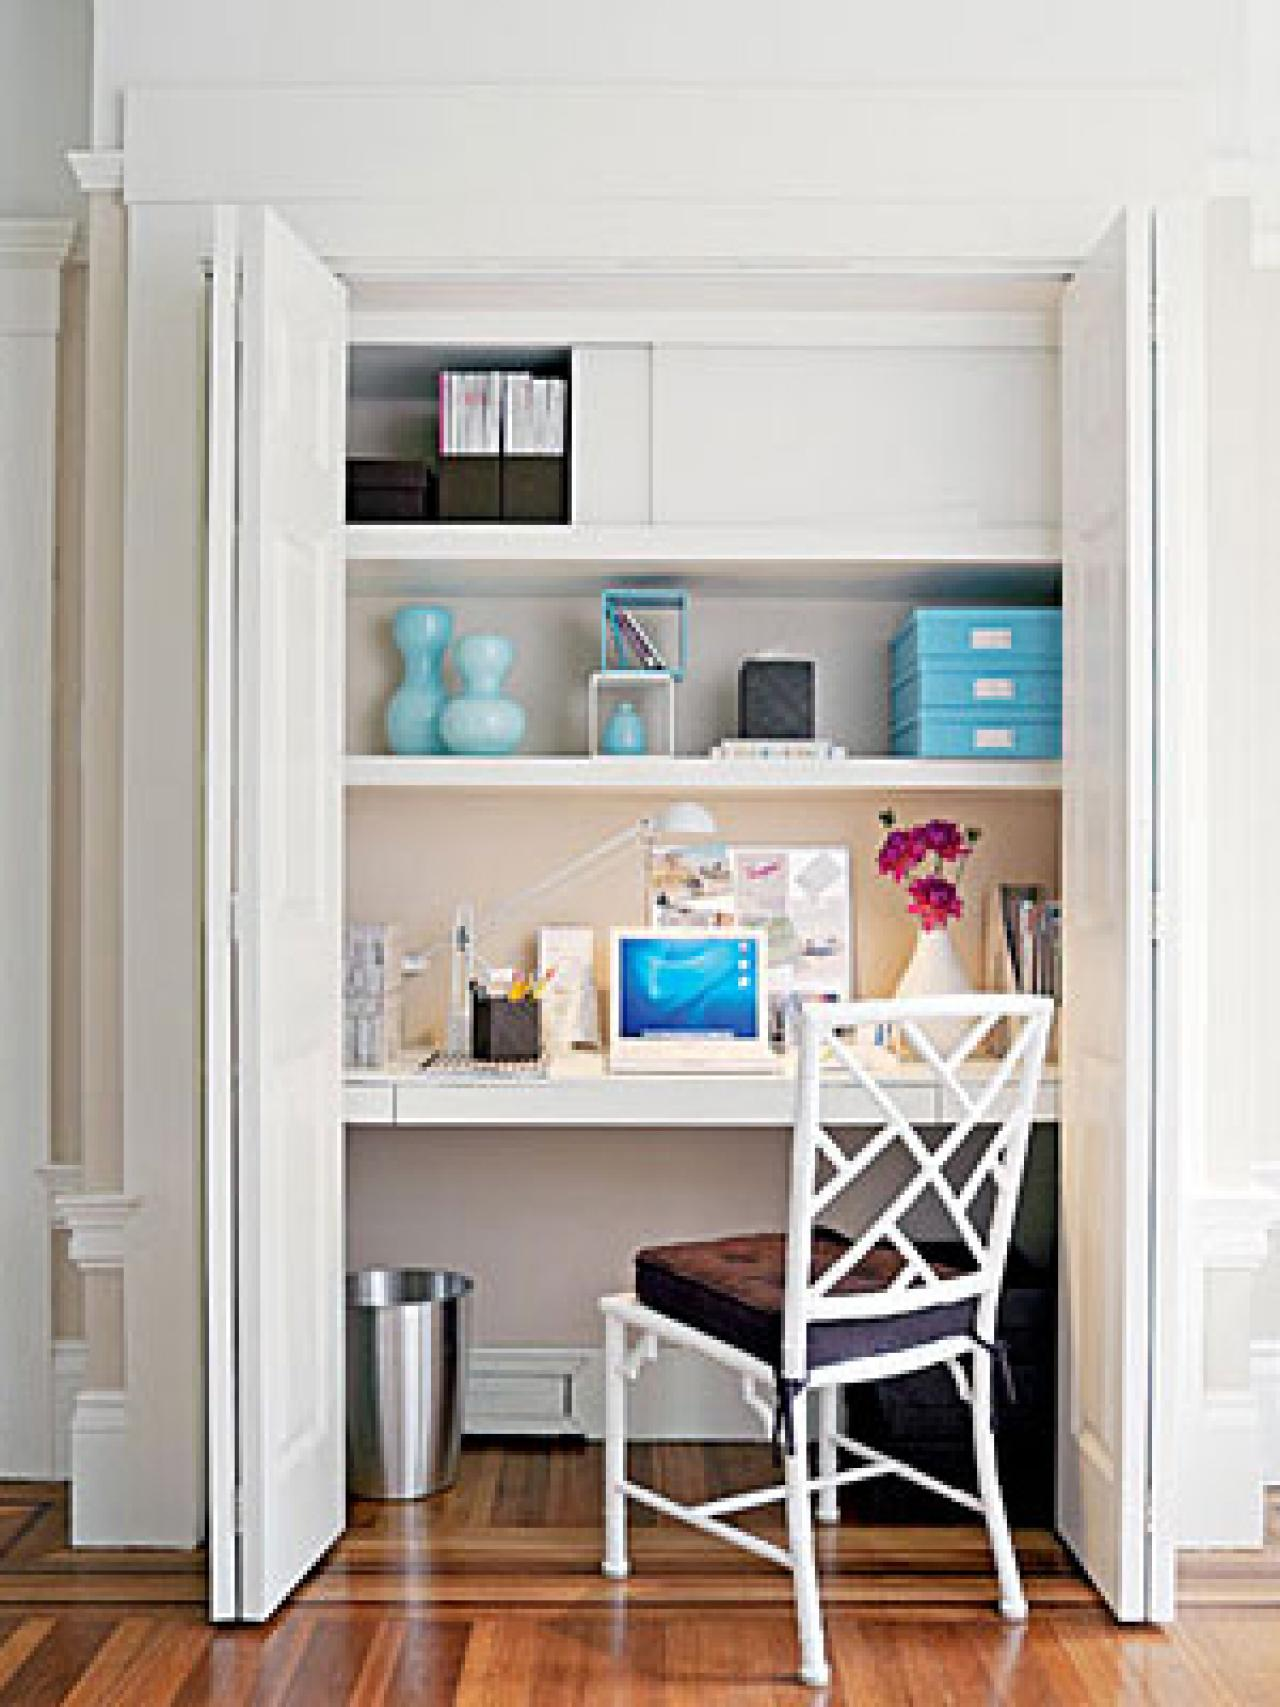 Superior Small Space Home Office Ideas. Tags: Small Space Home Office Ideas Hgtv.com